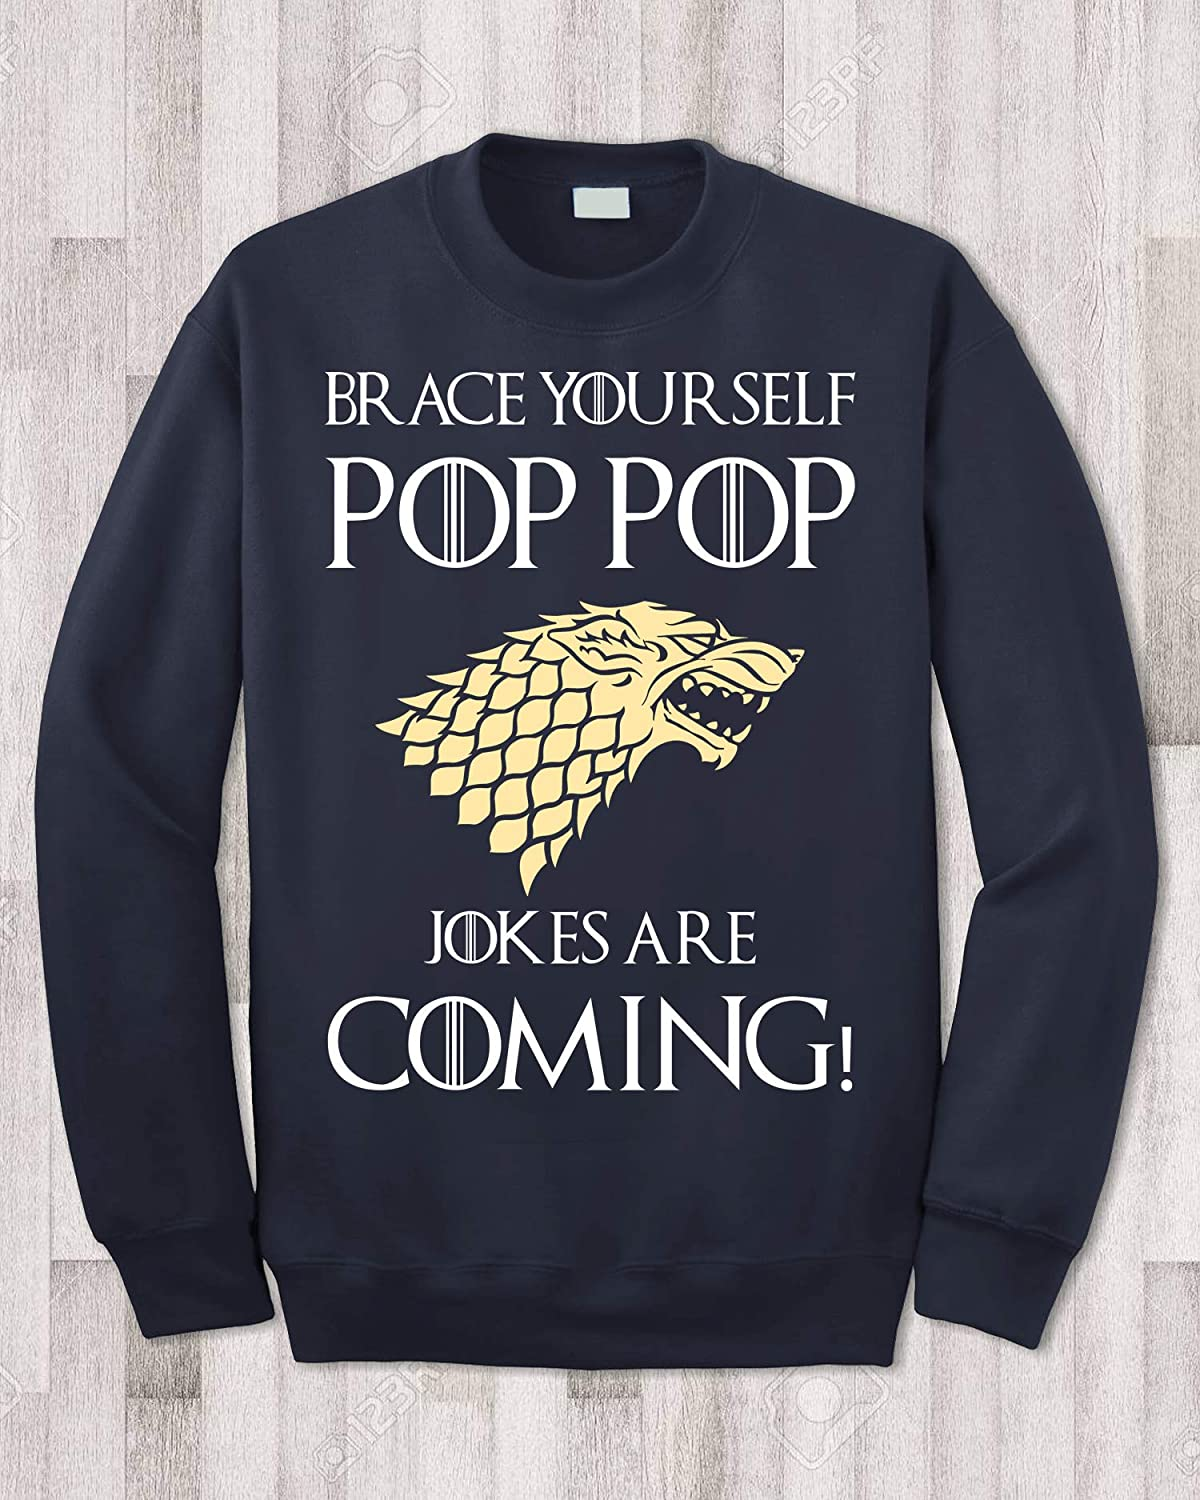 Brace Yourself Pop Pop Jokes are Coming Funny Vintage Trending Awesome Gift